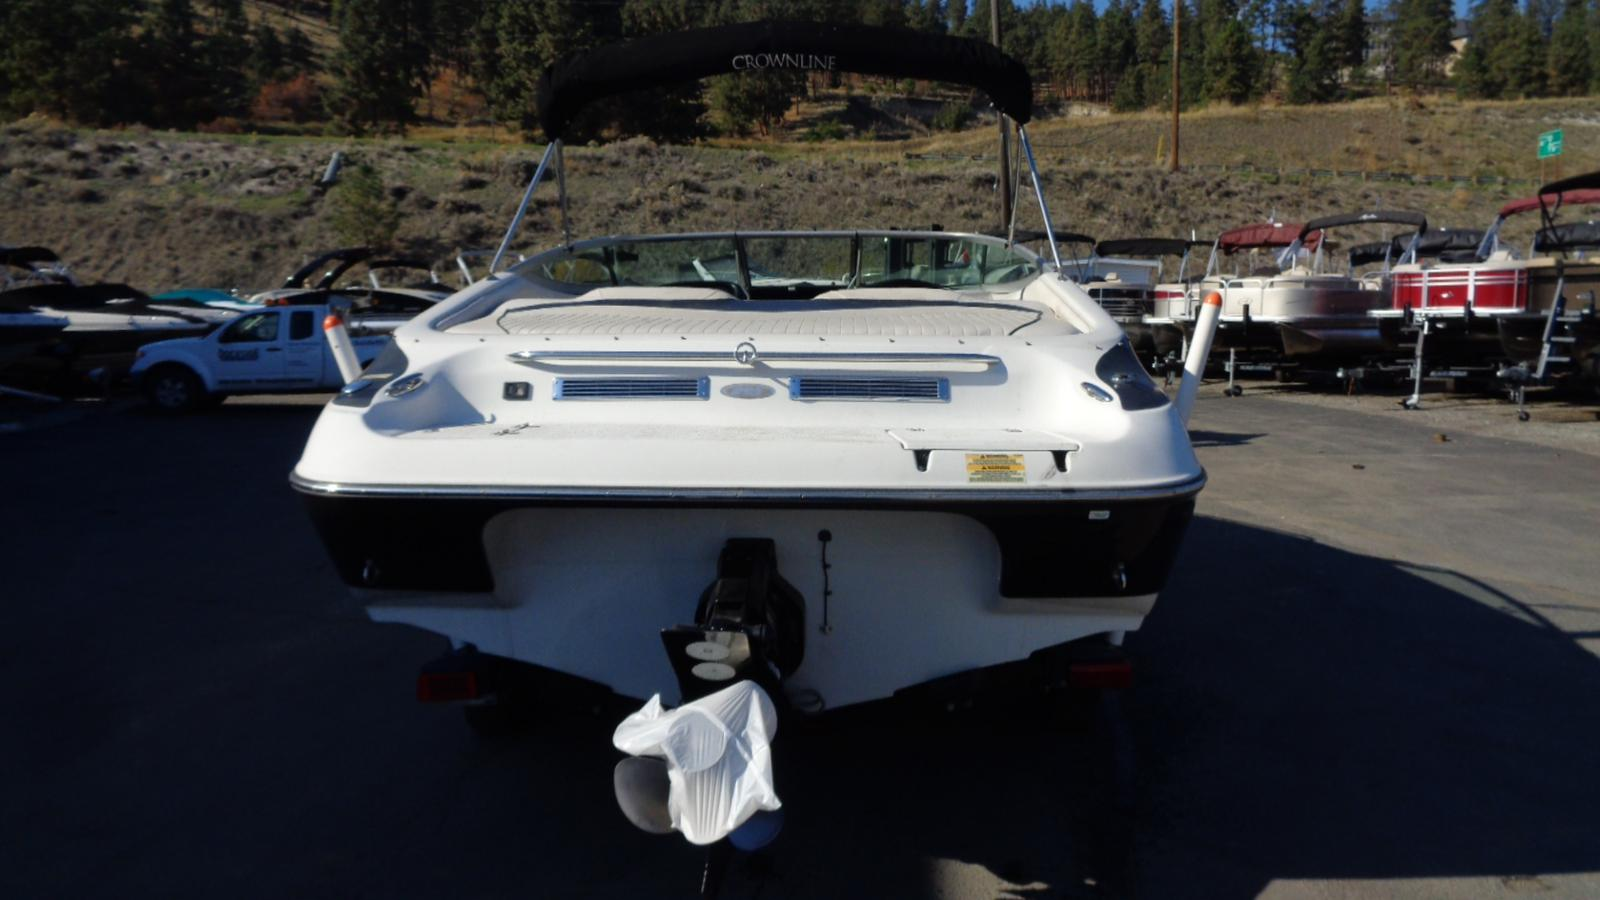 2005 Crownline boat for sale, model of the boat is 225 BR & Image # 3 of 9